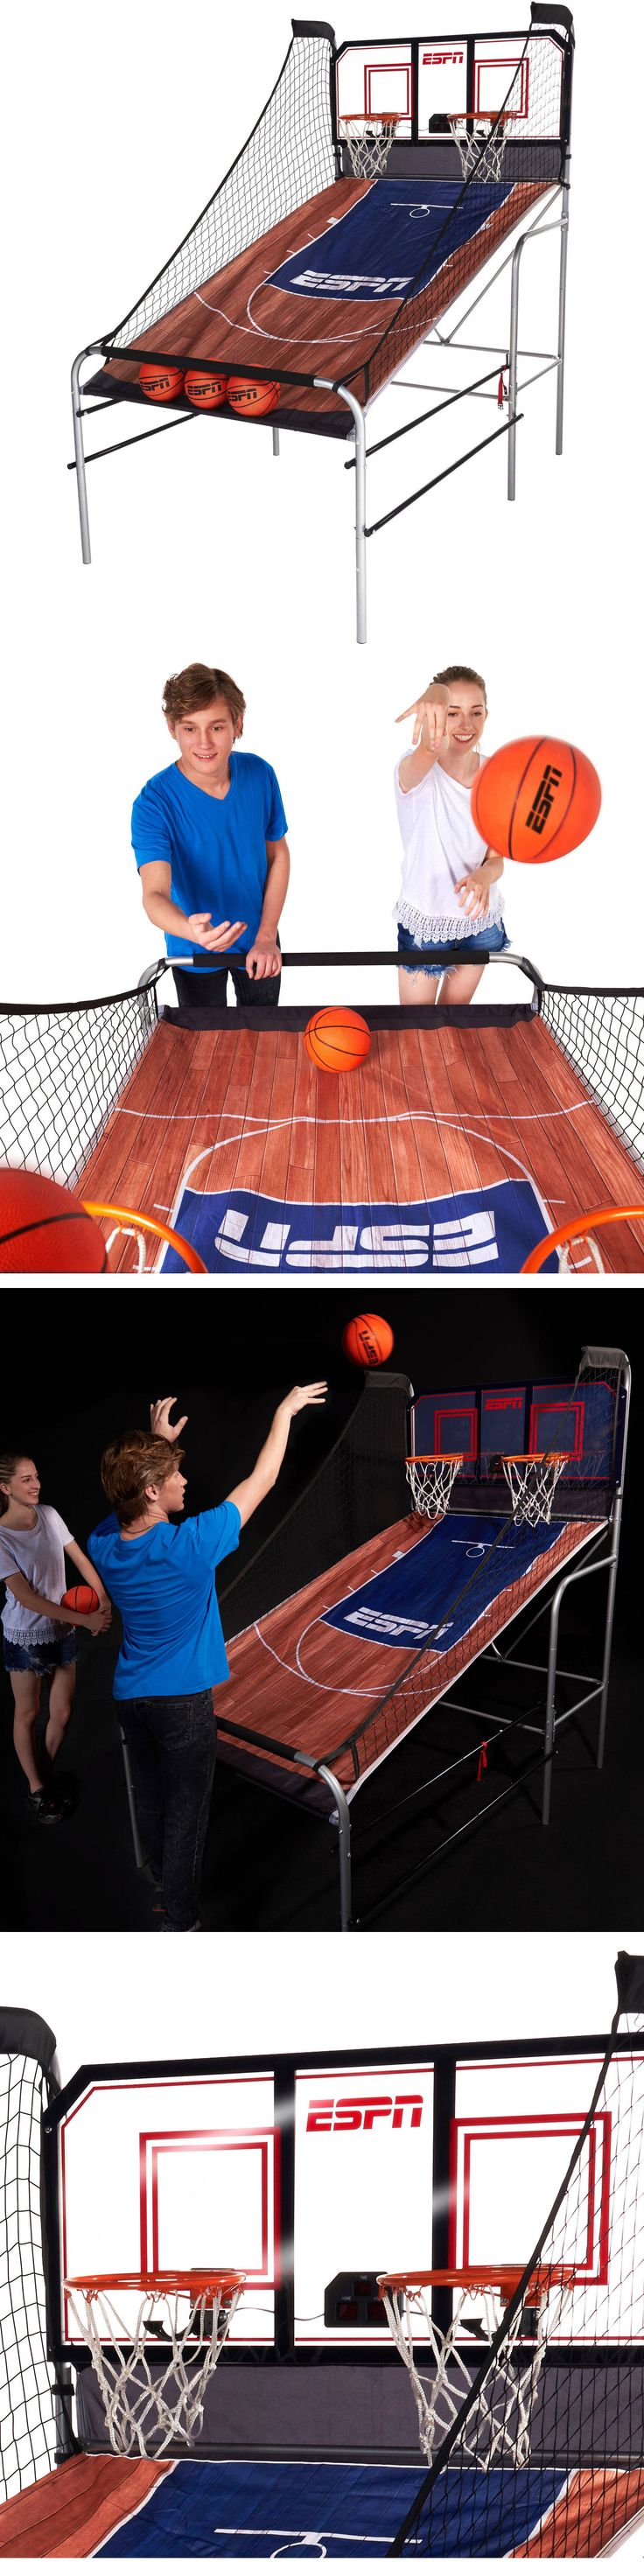 Other Indoor Games 36278: Espn 2 Player Basketball Game With Authentic Pc Backboard Led Scorer Sound New -> BUY IT NOW ONLY: $172.88 on eBay!